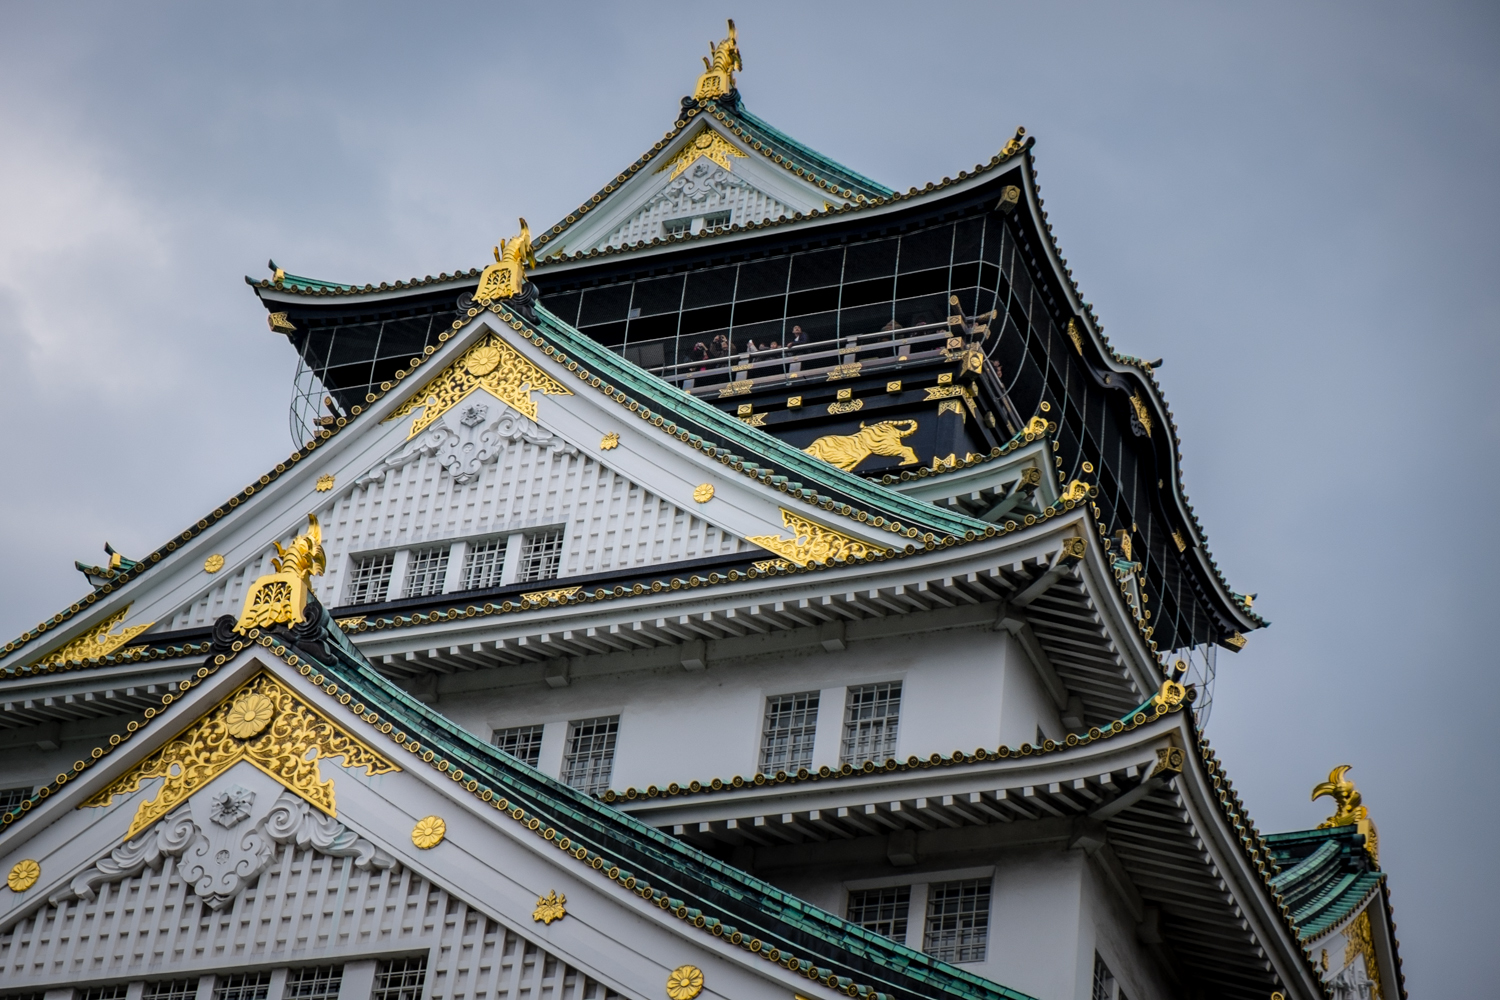 Close up of Osaka castle. The golden fixtures looked amazing in person.